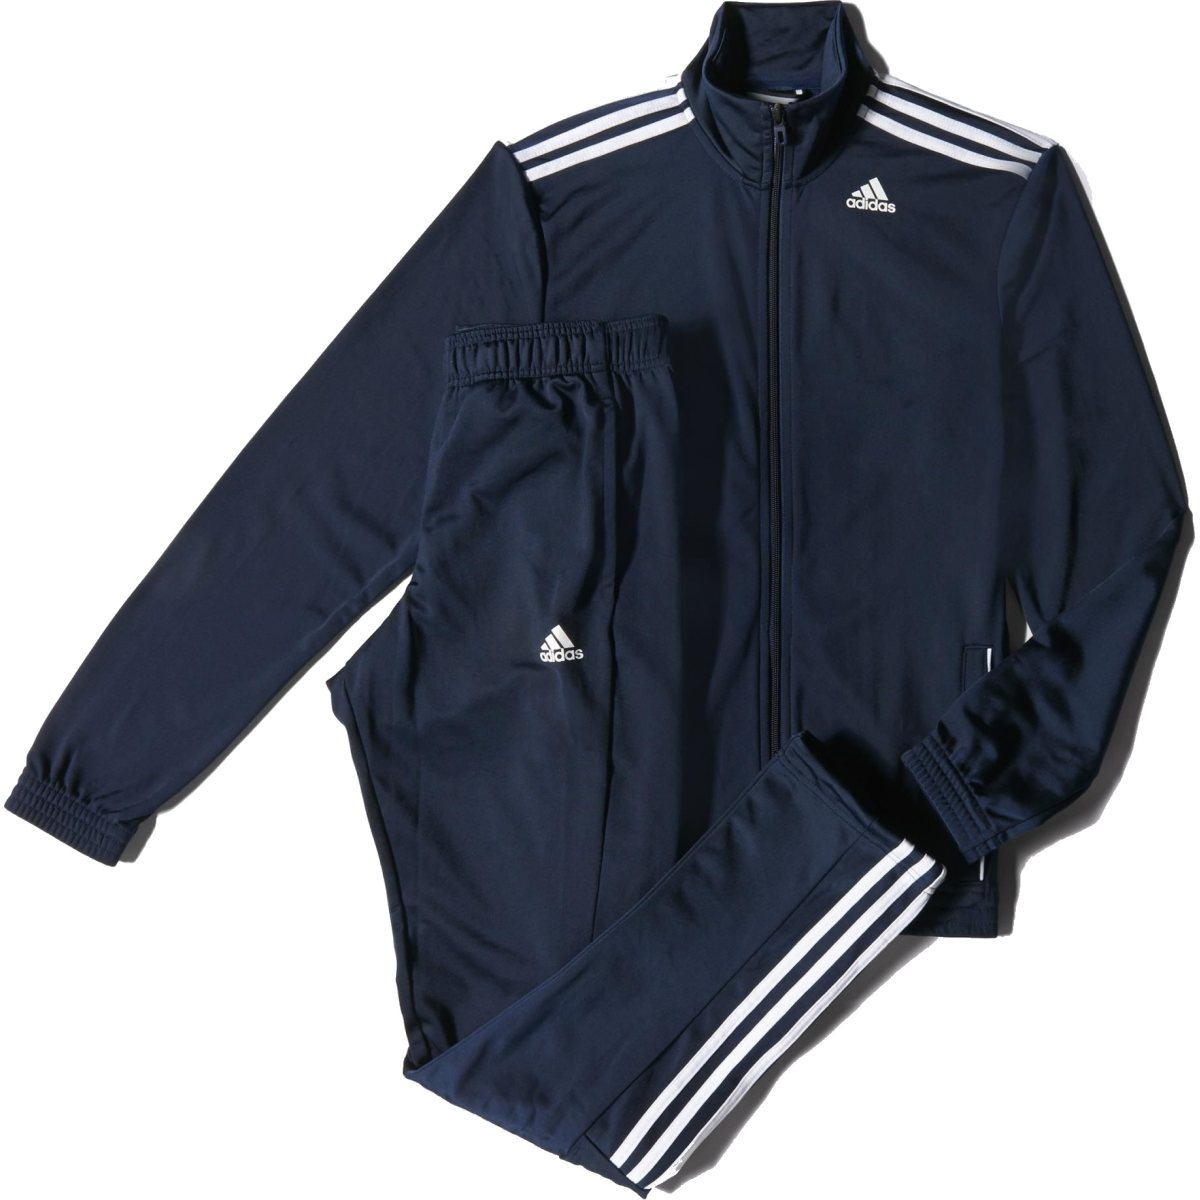 a043b02ca7921 Acquista tute adidas in offerta - OFF48% sconti